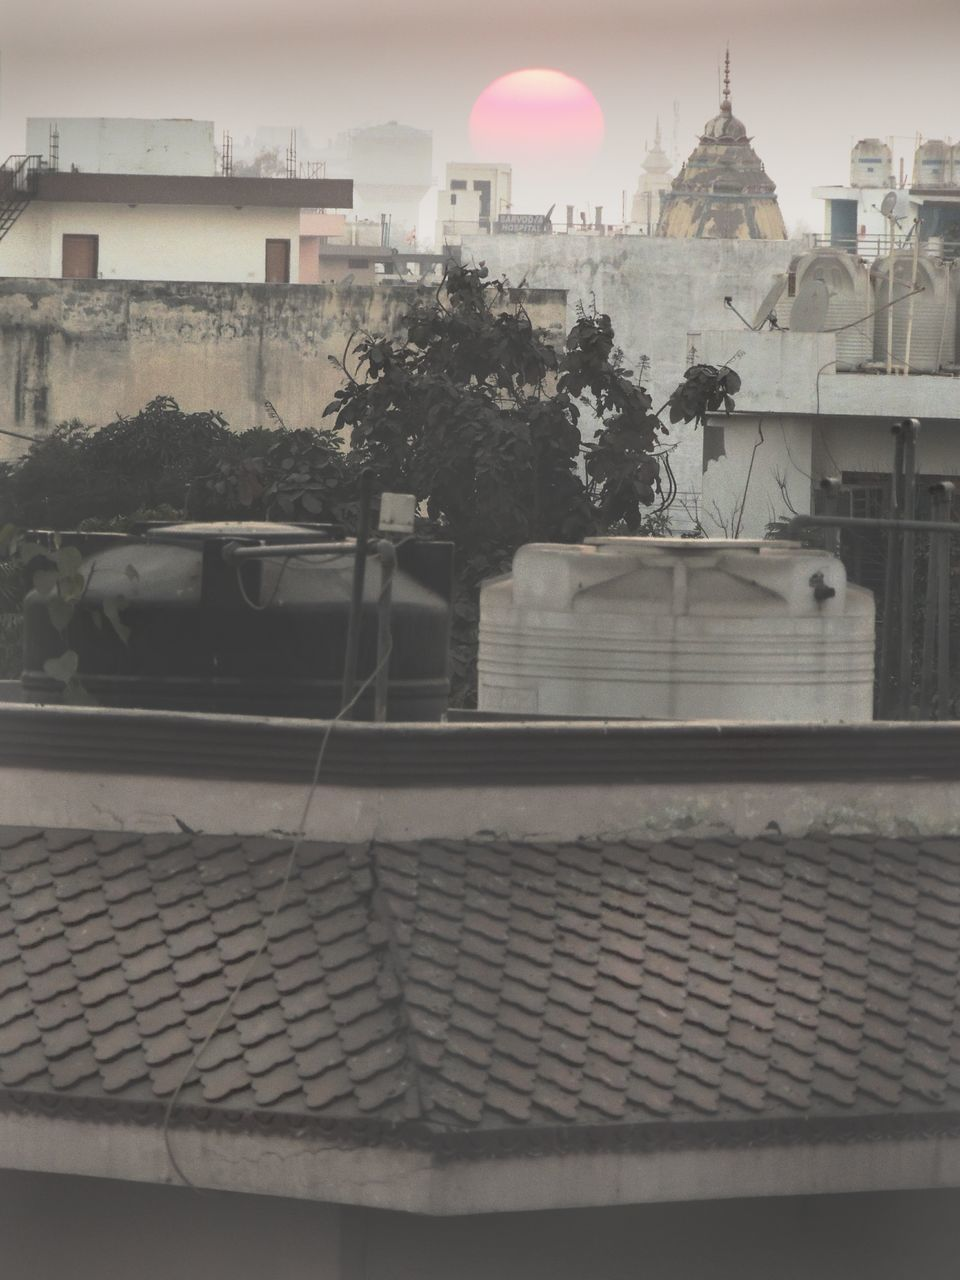 High Angle View Of Water Storage Tanks In Building Terrace